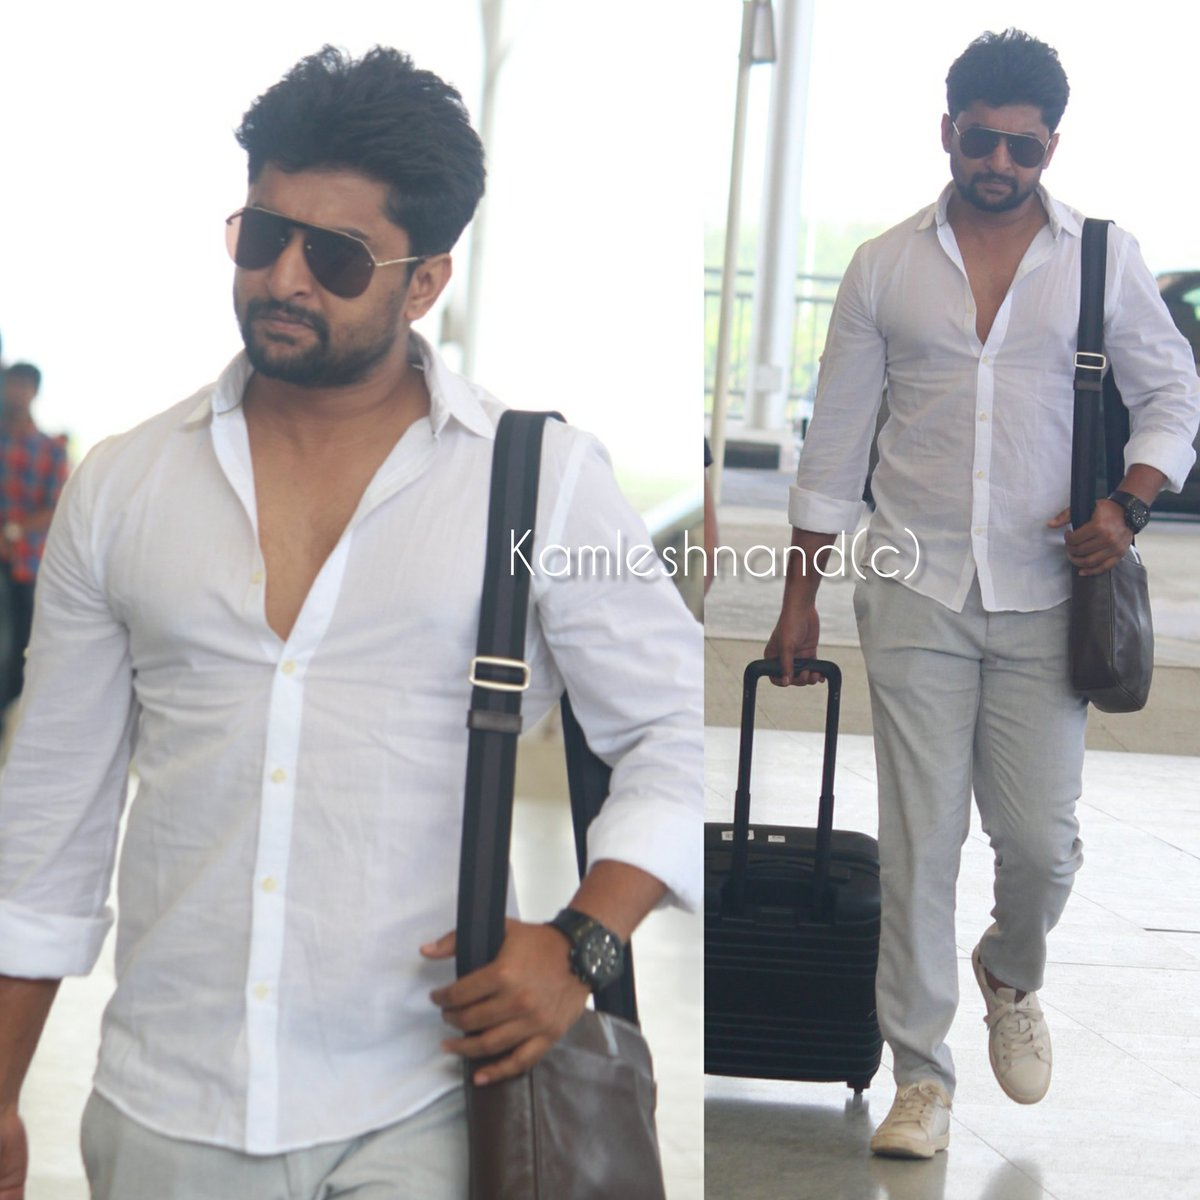 Natural star #Nani papped at Rgia  Look handsome in white  missing was just smile anthe..... @kamlesh_nand @NameisNani #TuckJagadish #tollywoodcelebs #southpaparazzi pic.twitter.com/zmv7LAhpsZ